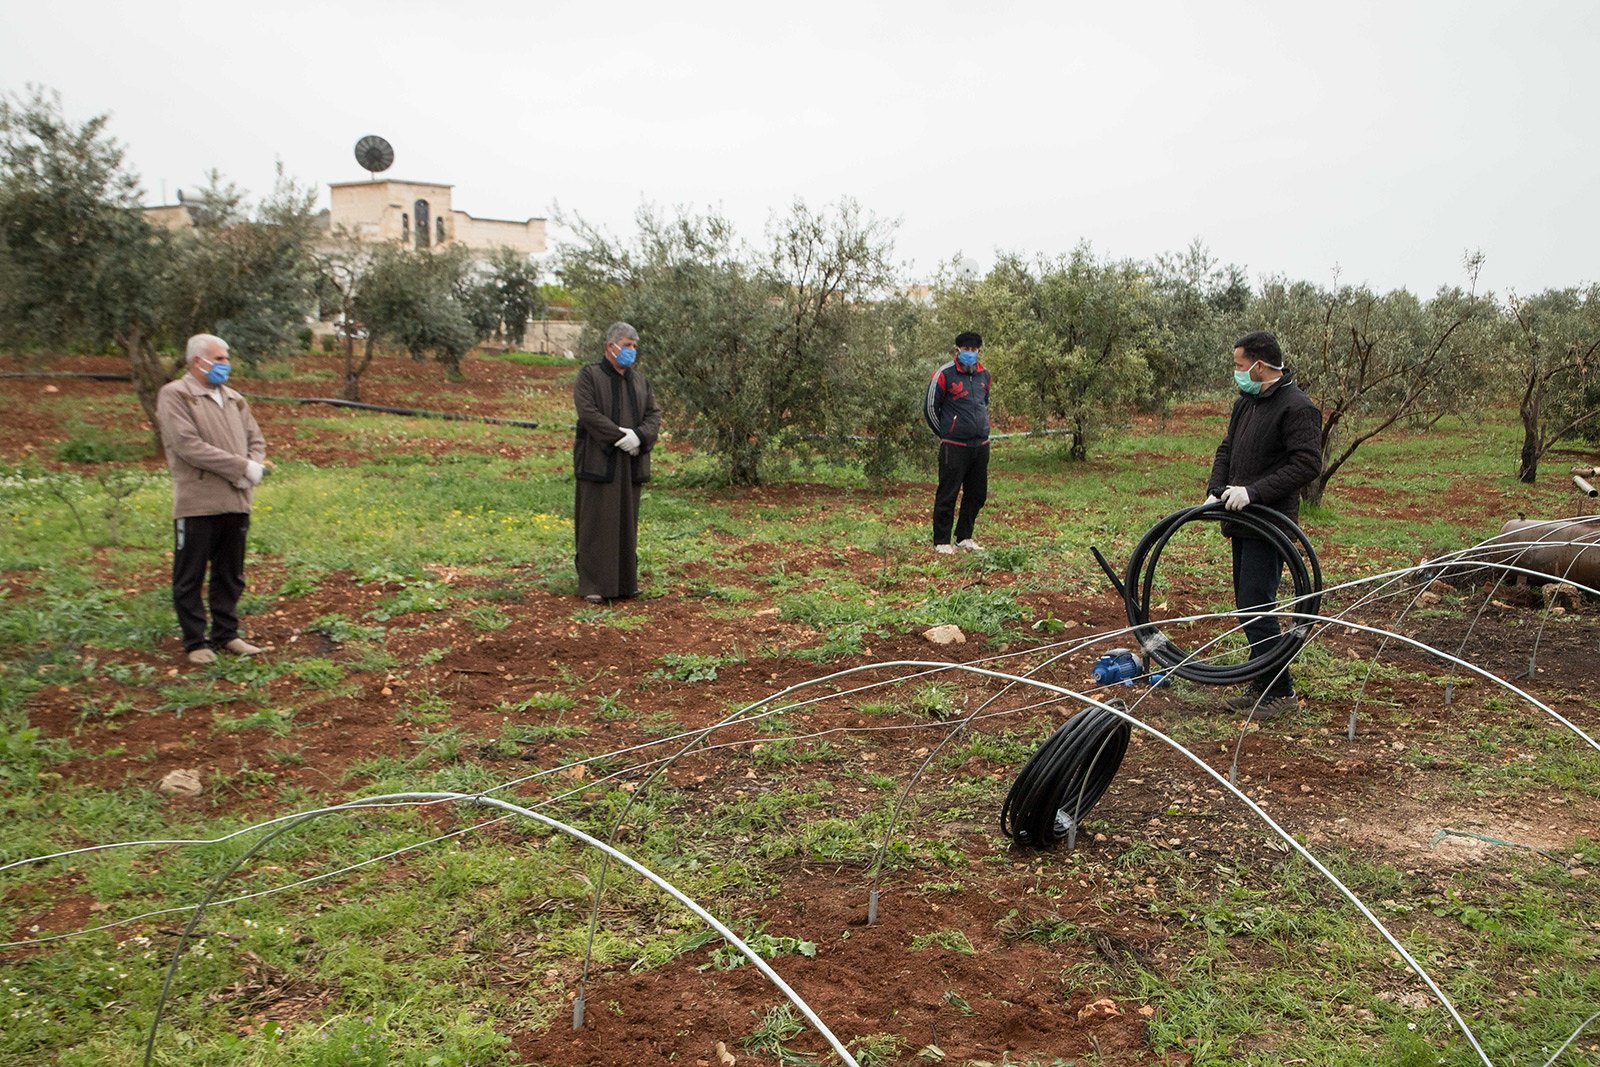 Syrian farmers install low tunnels and create nurseries while utilizing COVID-19 protection measures in the Syrian Arab Republic